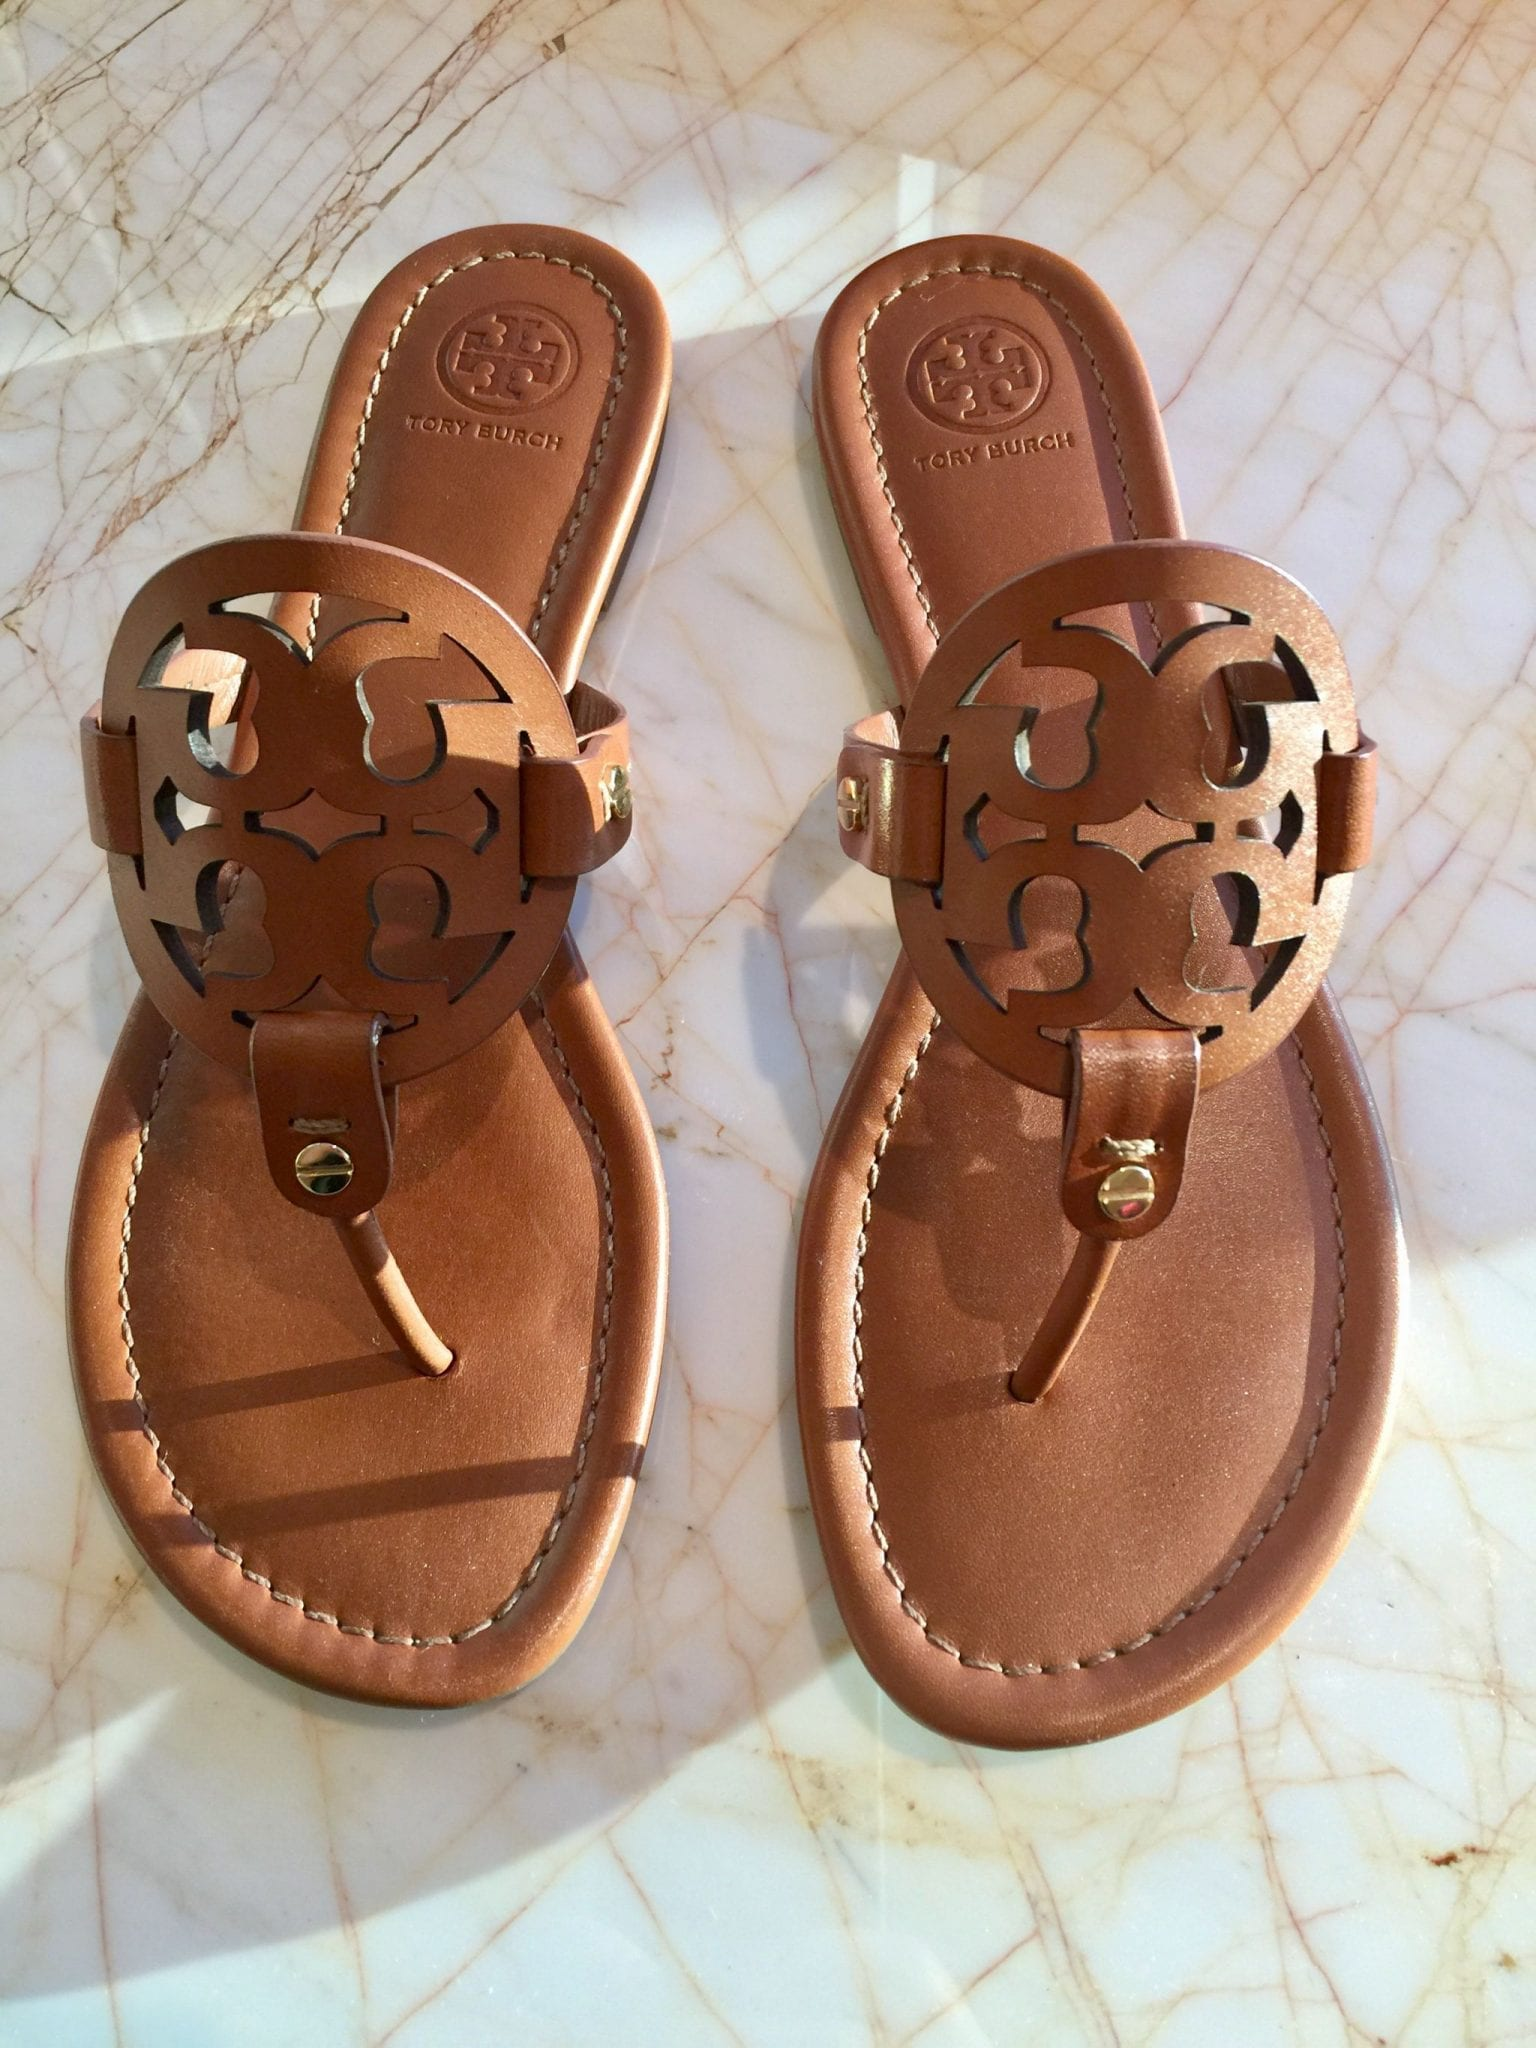 My New Tory Burch Miller Sandals Vintage Vachetta Leather